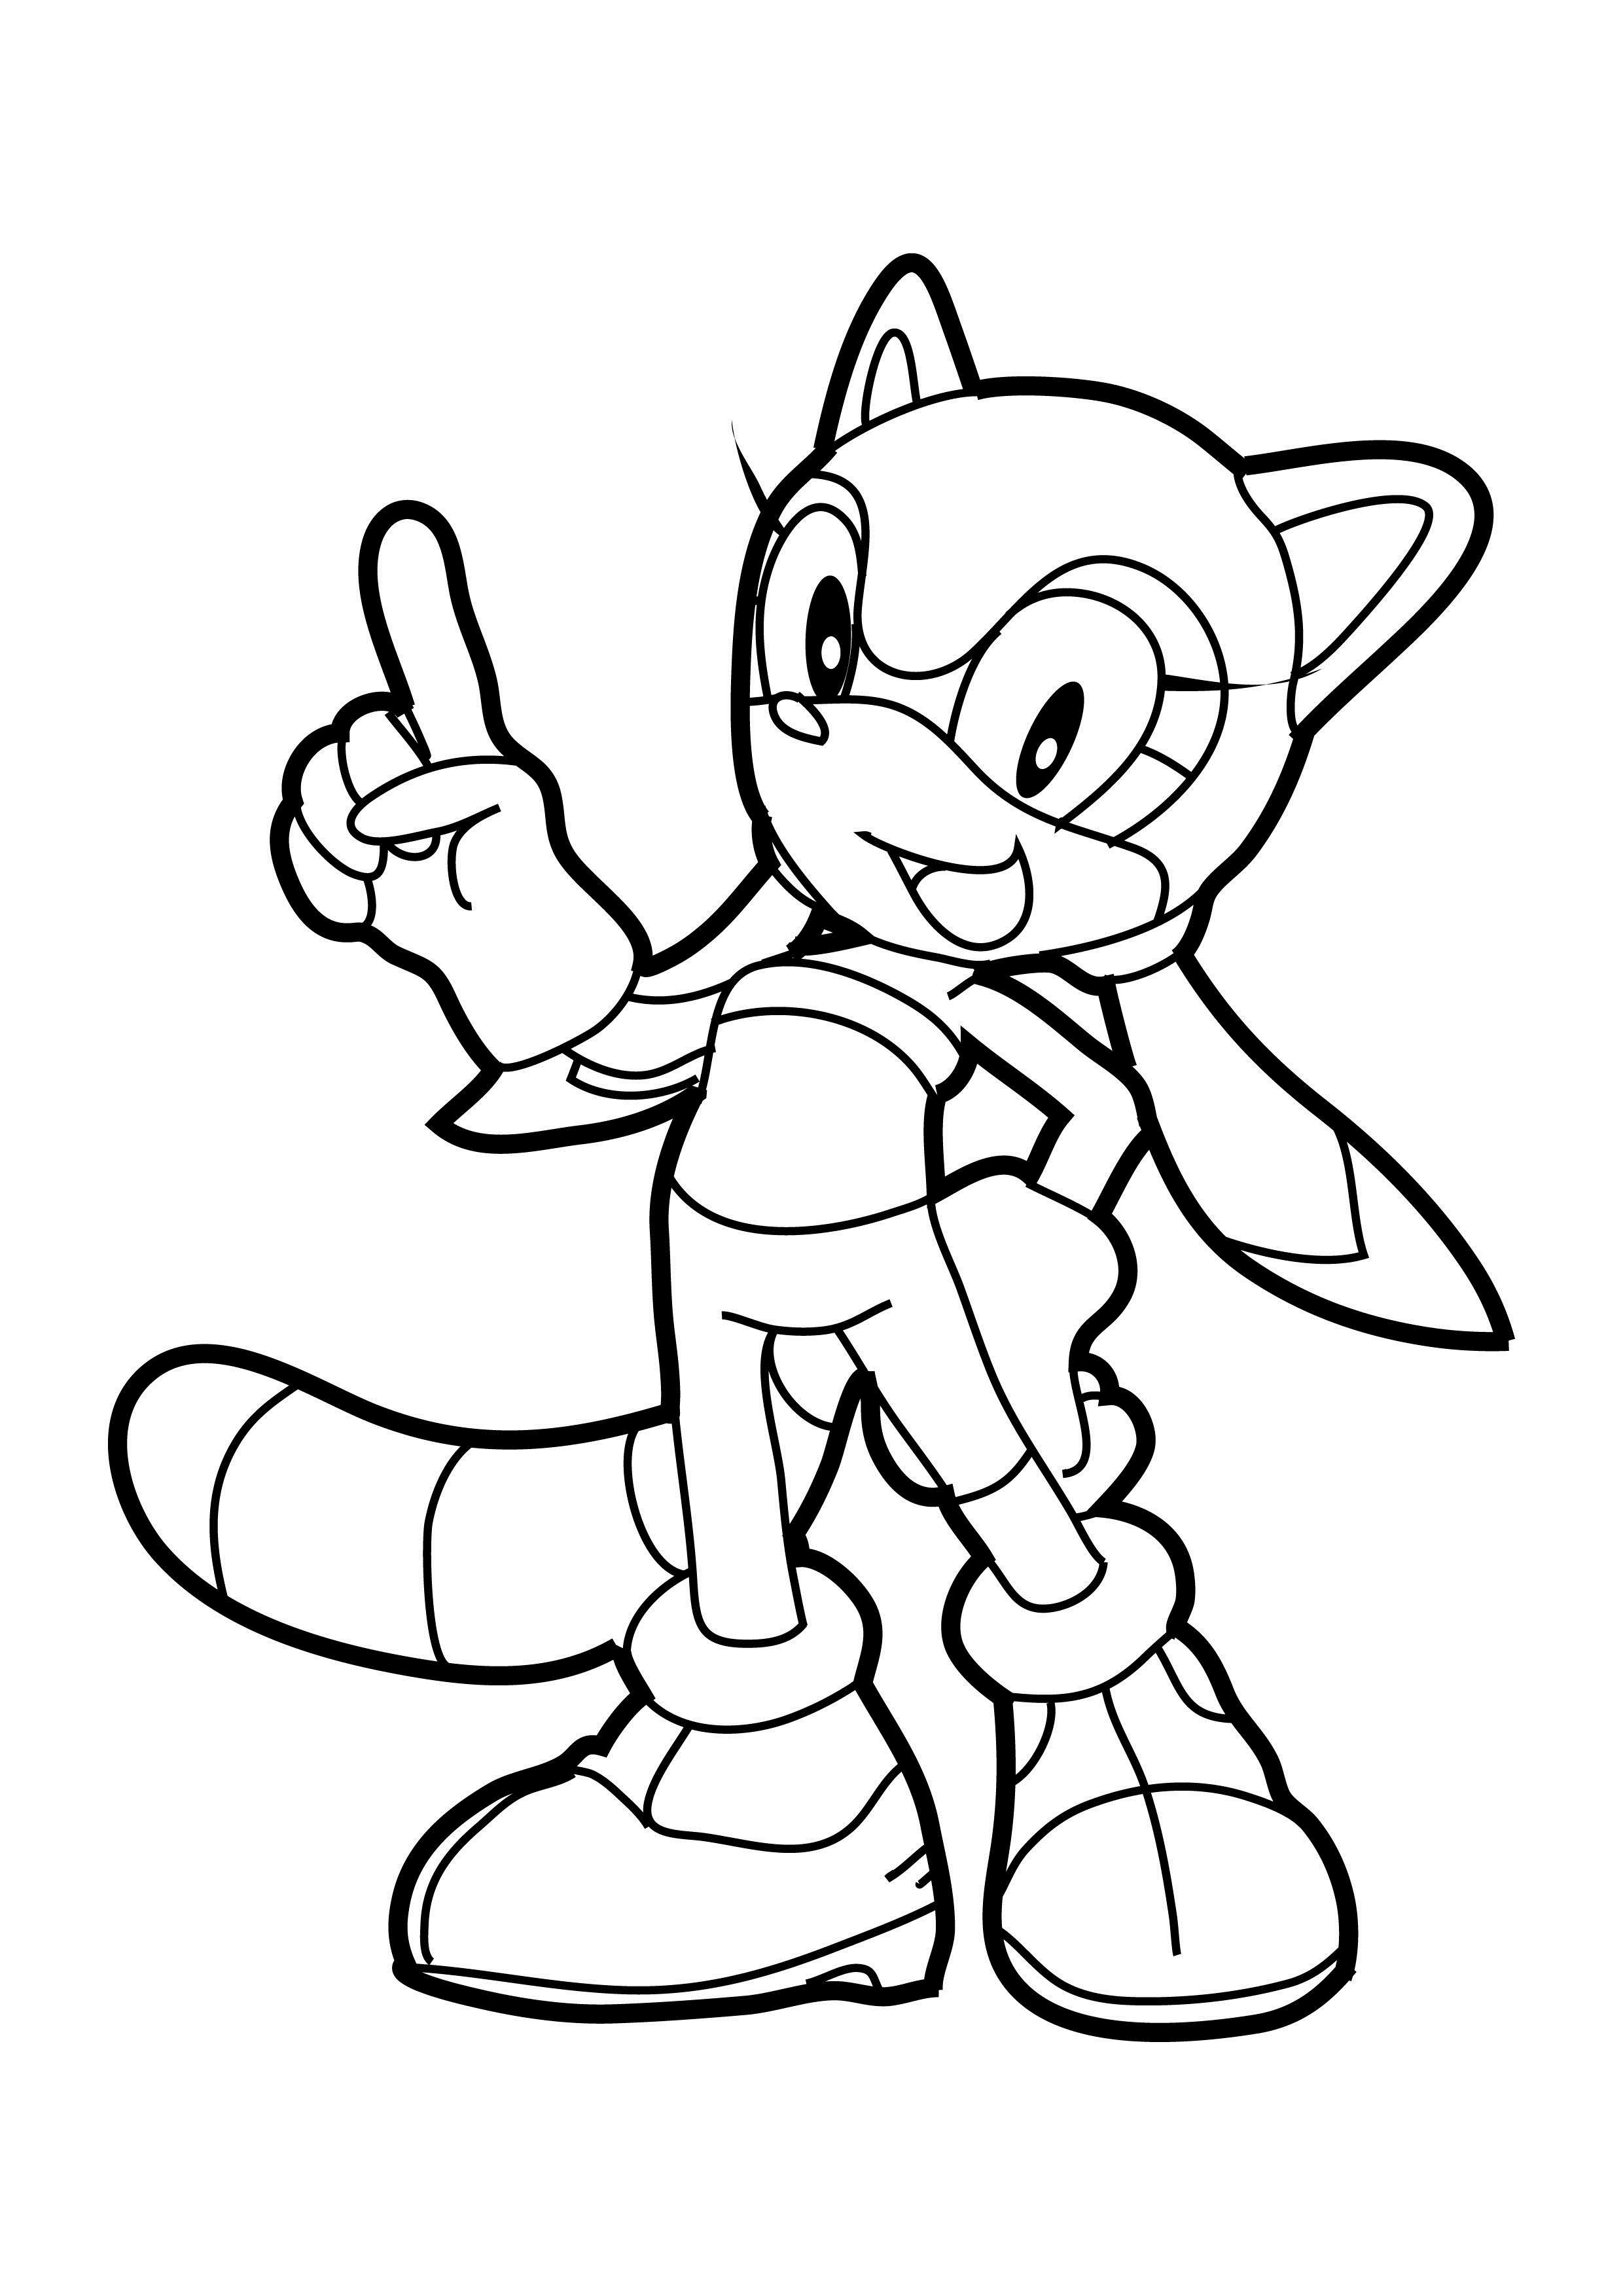 2480x3508 Free Printable Sonic The Hedgehog Coloring Pages For Kids